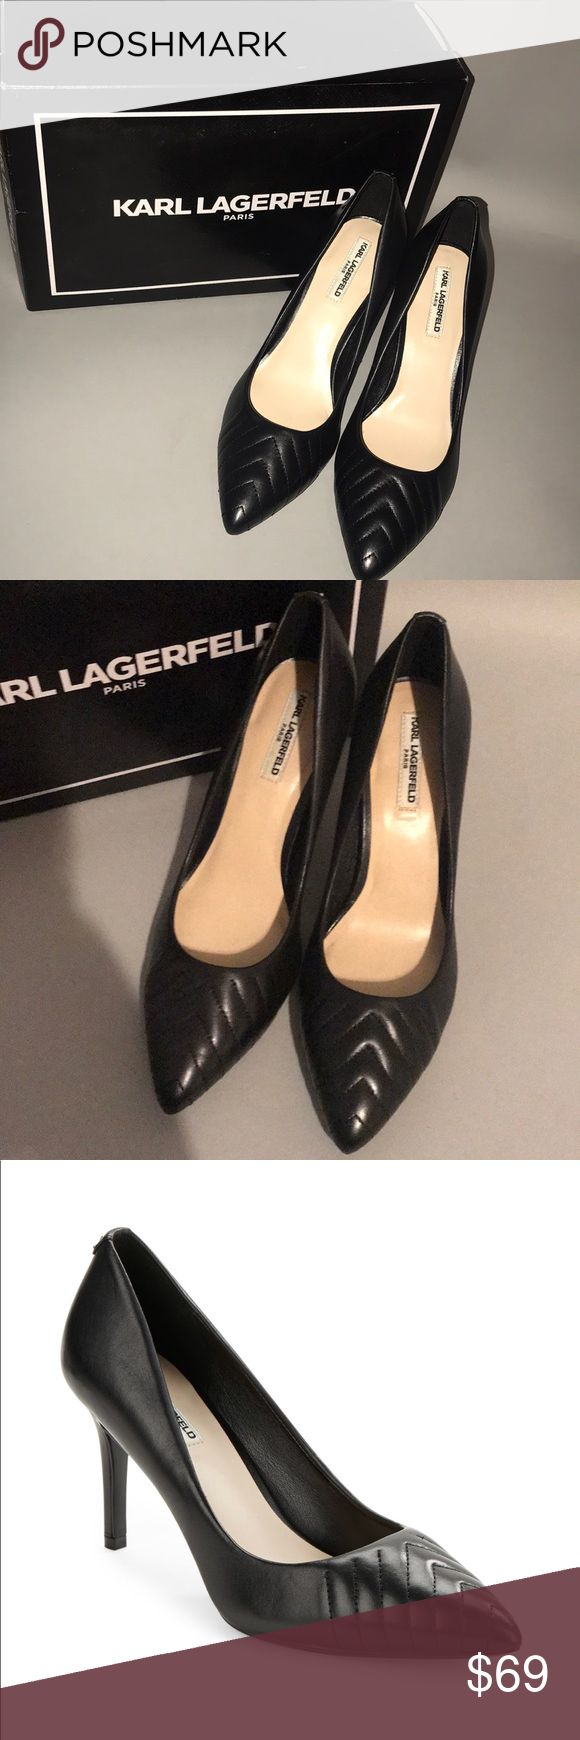 Brand new Karl Lagerfeld Paris new with box Brand new Karl Lagerfeld Paris new with box Karl Lagerfeld Shoes Heels